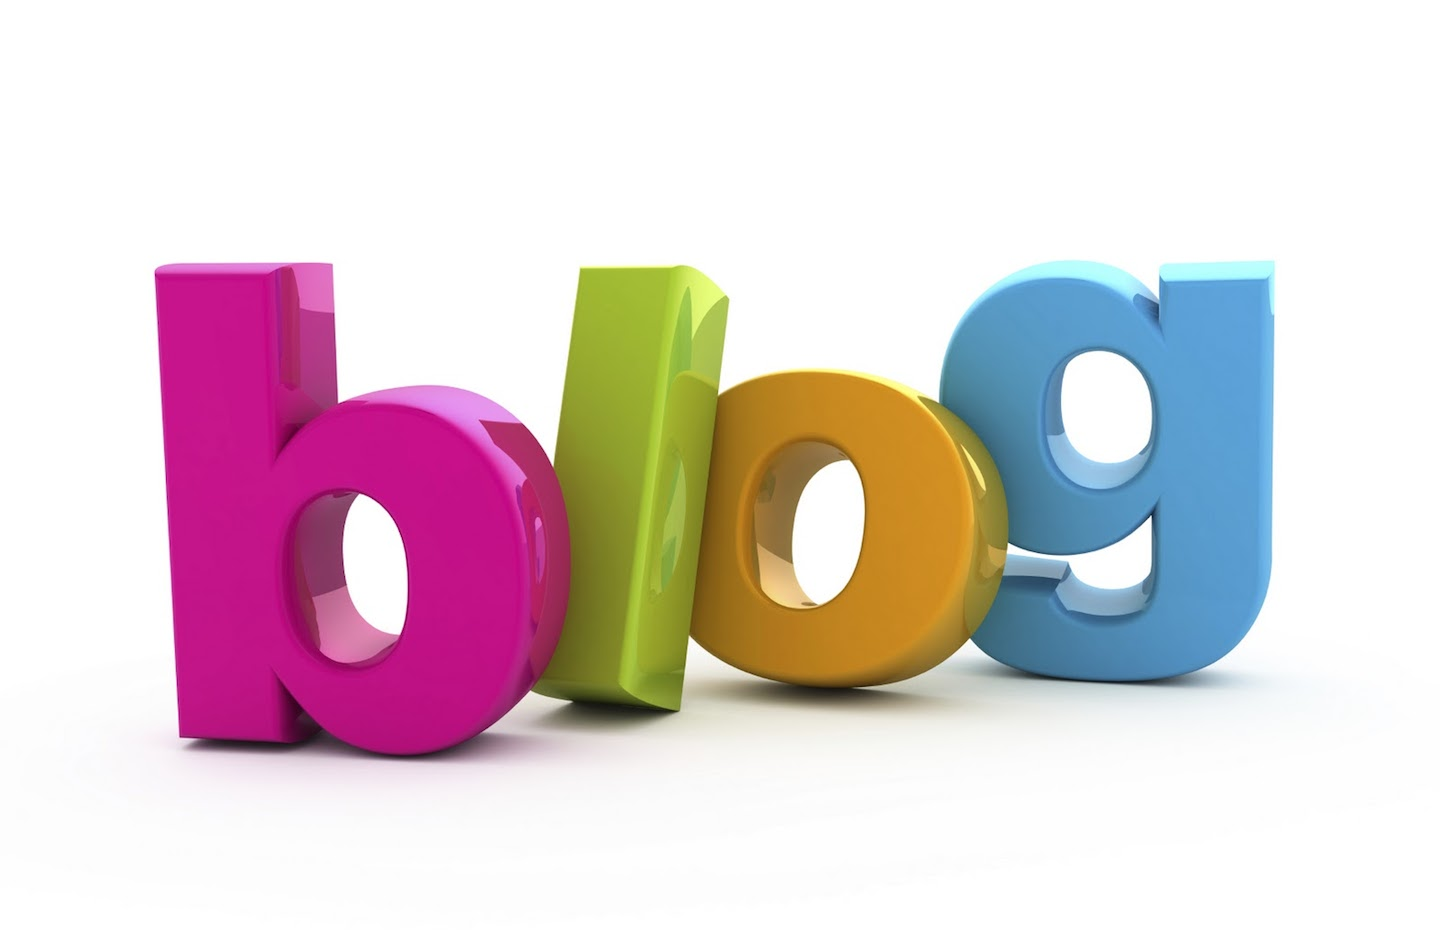 What's the difference between blogging in Kuwait and blogging in the Philippines? (opencollegenet)